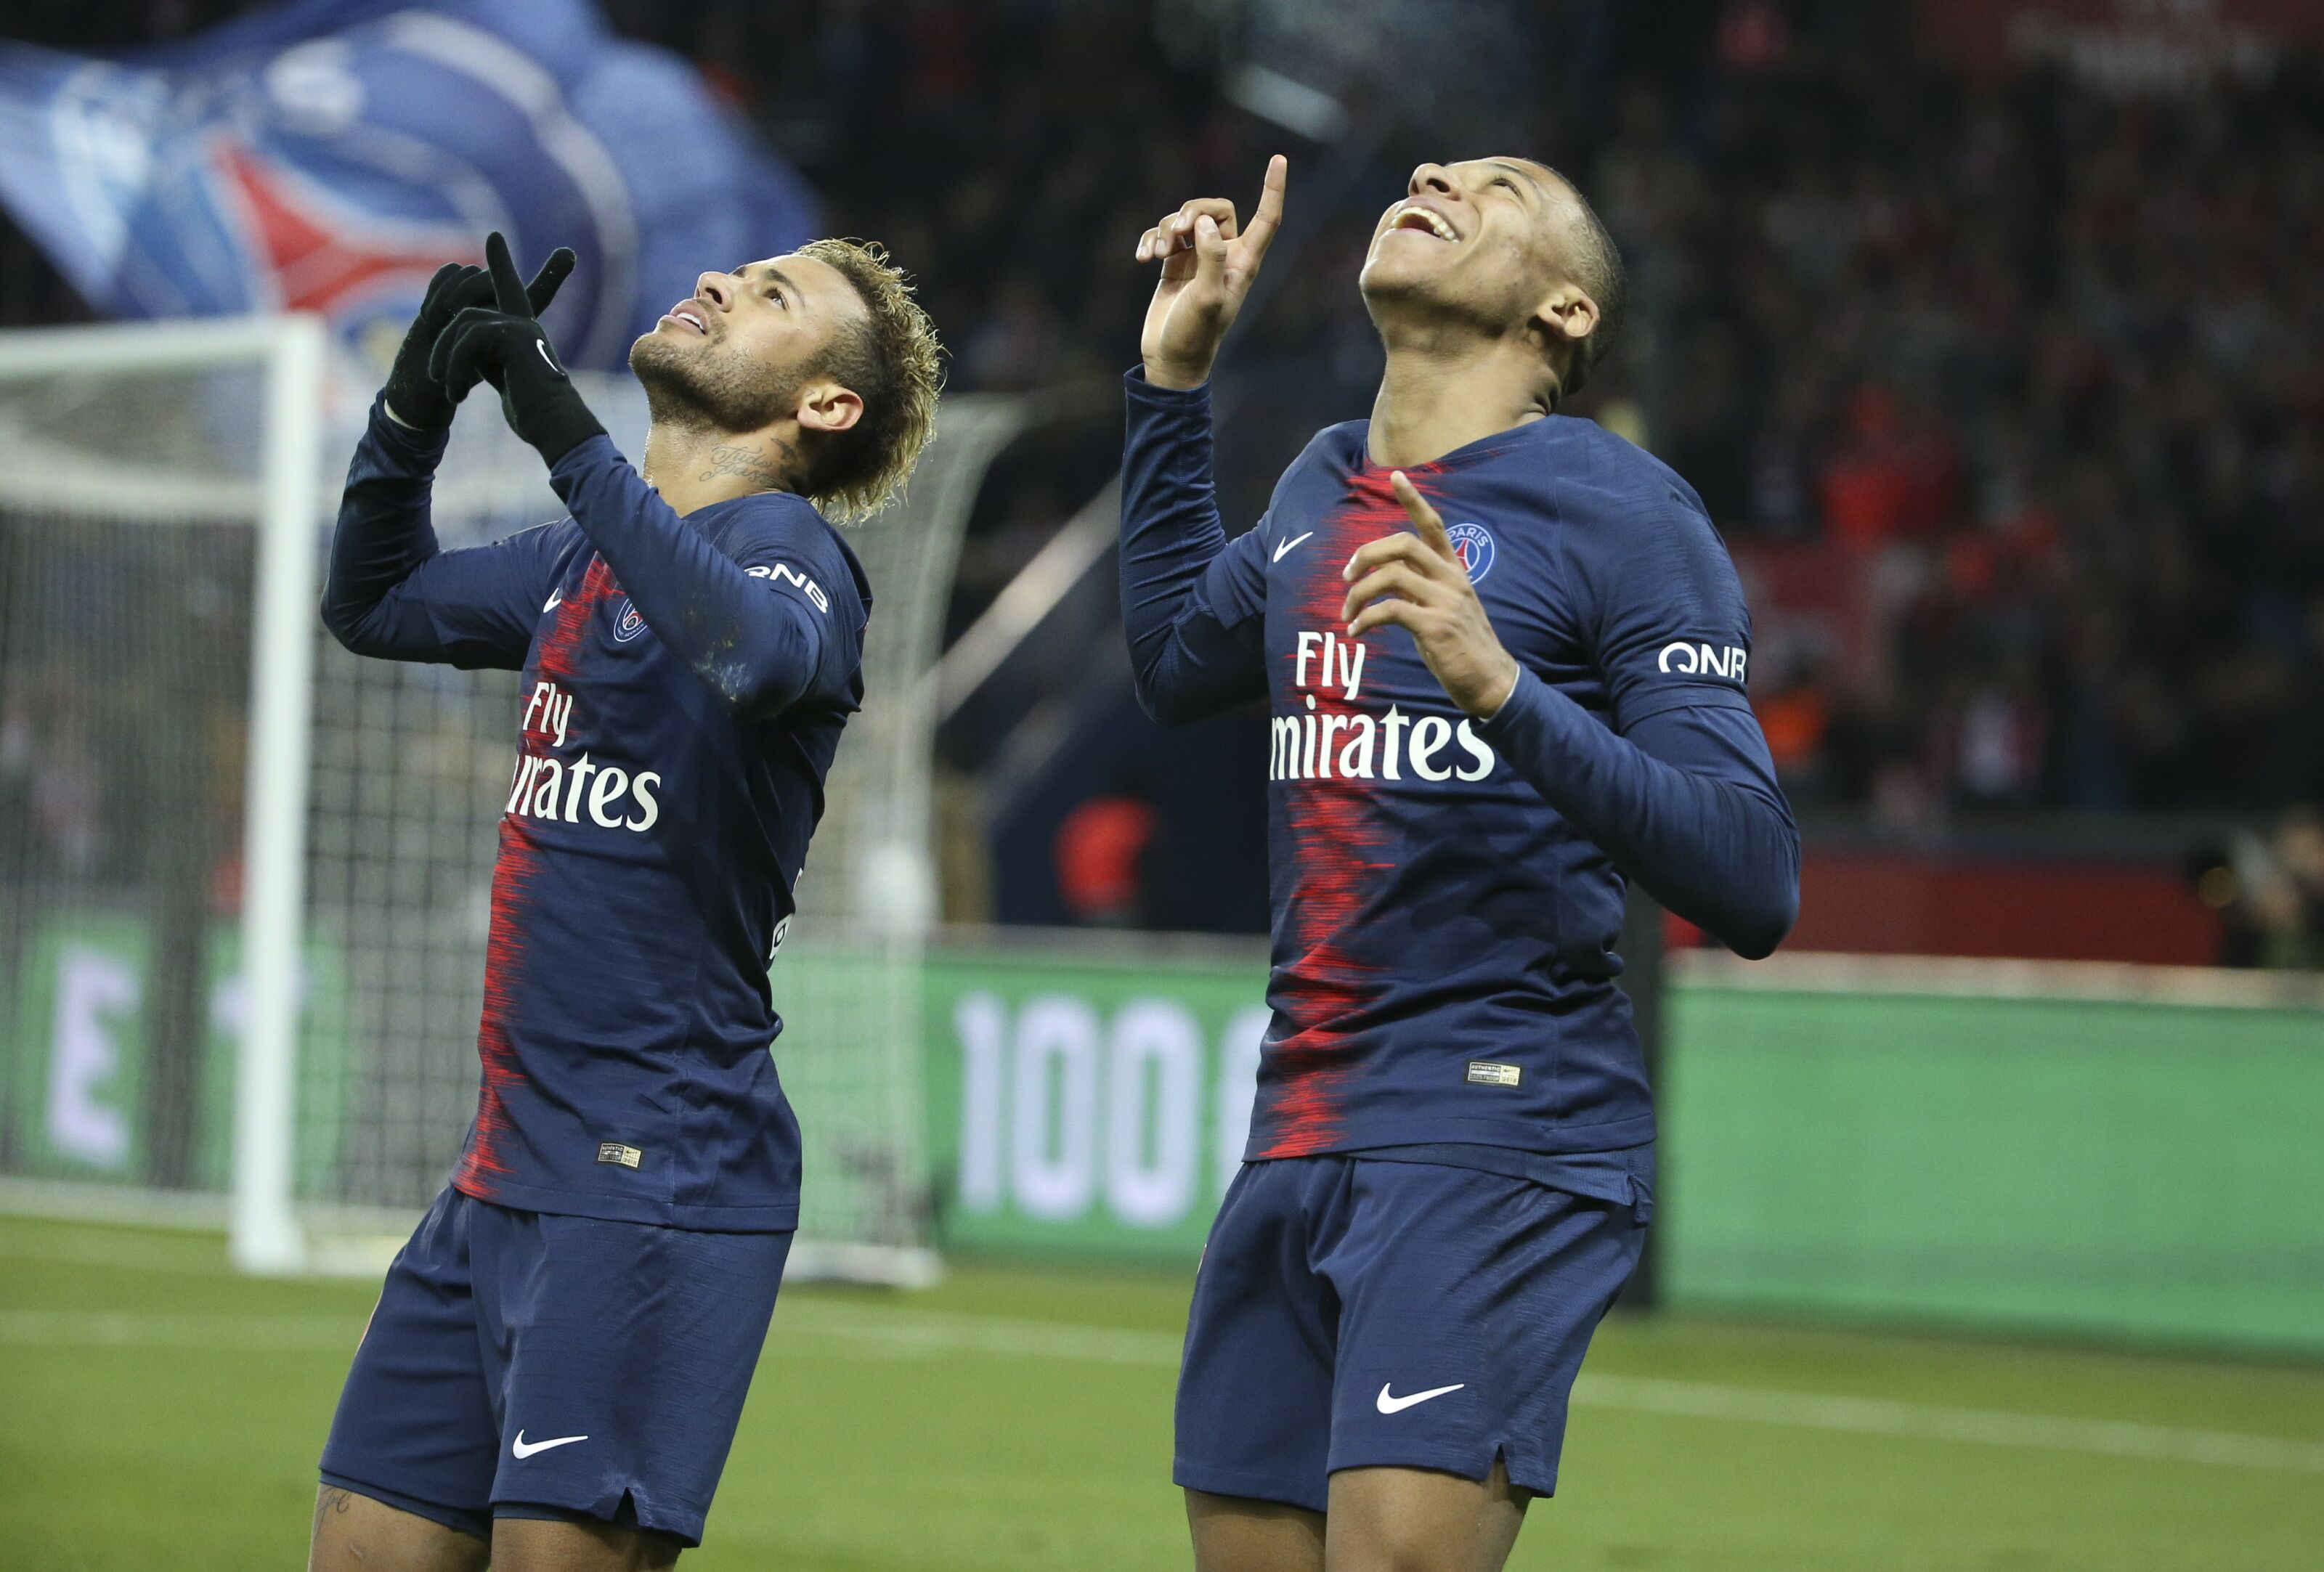 Paris Saint-Germain duo set to compete for Real Madrid transfer